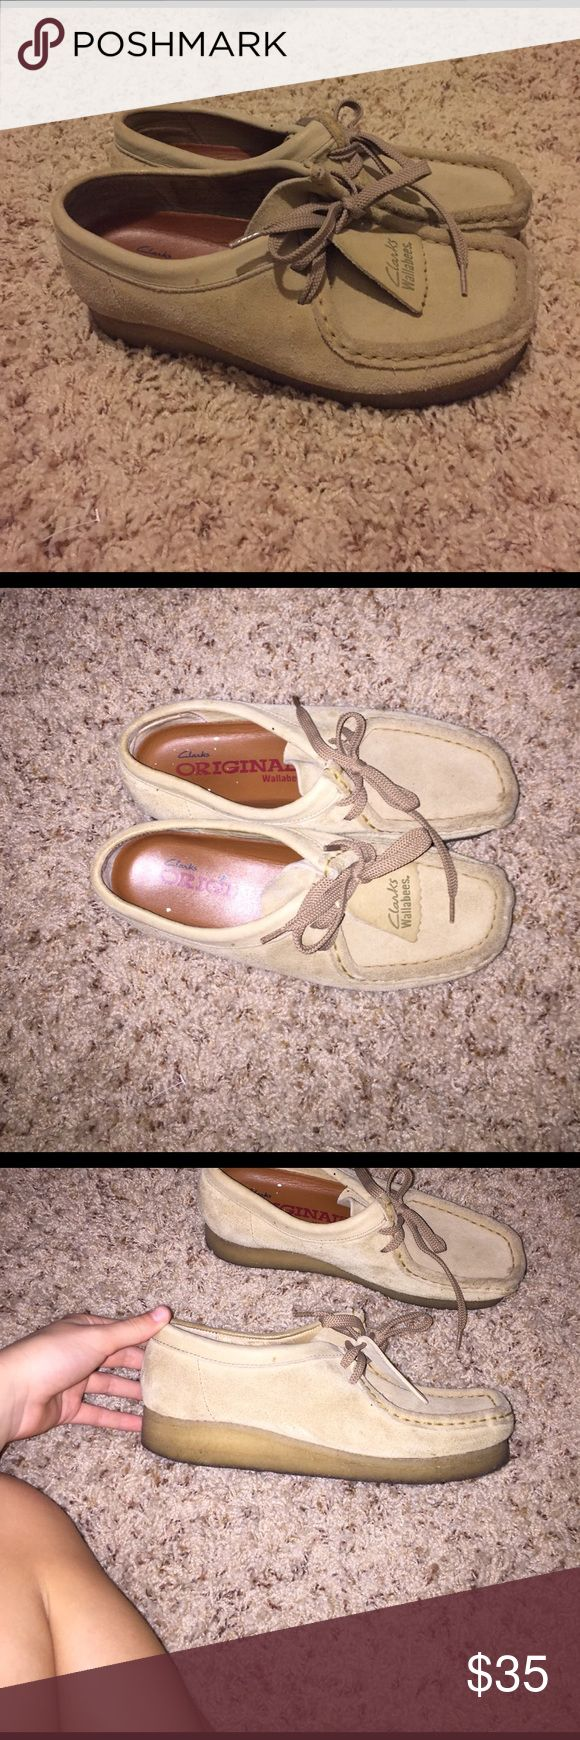 Women's Clarks wallabies Worn a few times but in good shape, mostly for school uniform Clarks Shoes Flats & Loafers